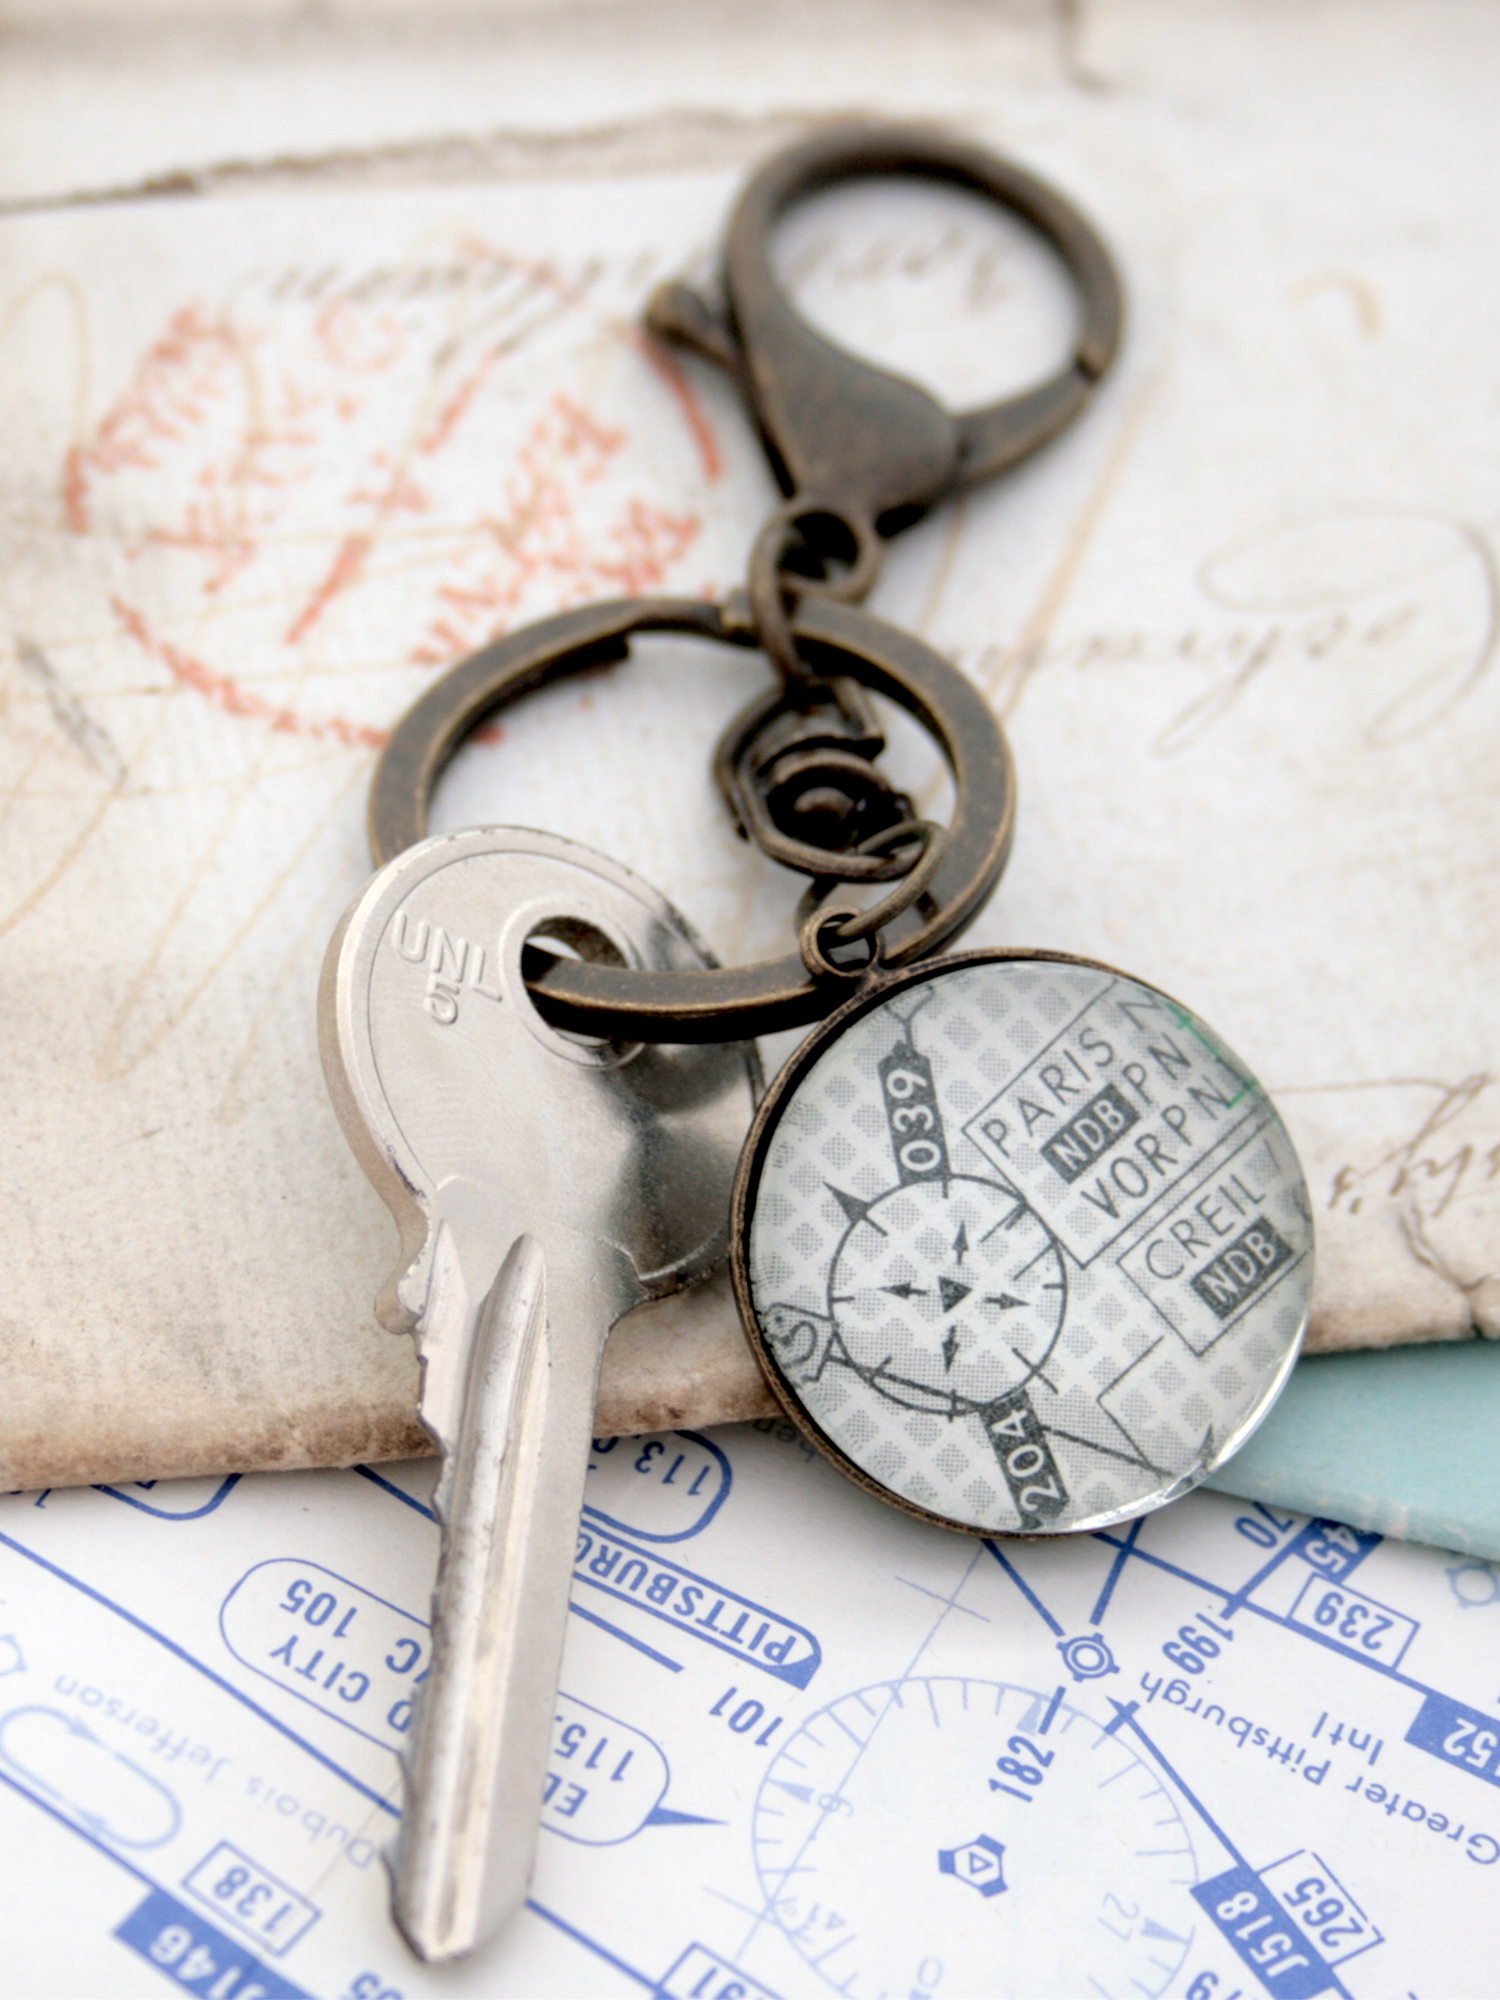 Airport keyring for steward personalized with aeronautical charts